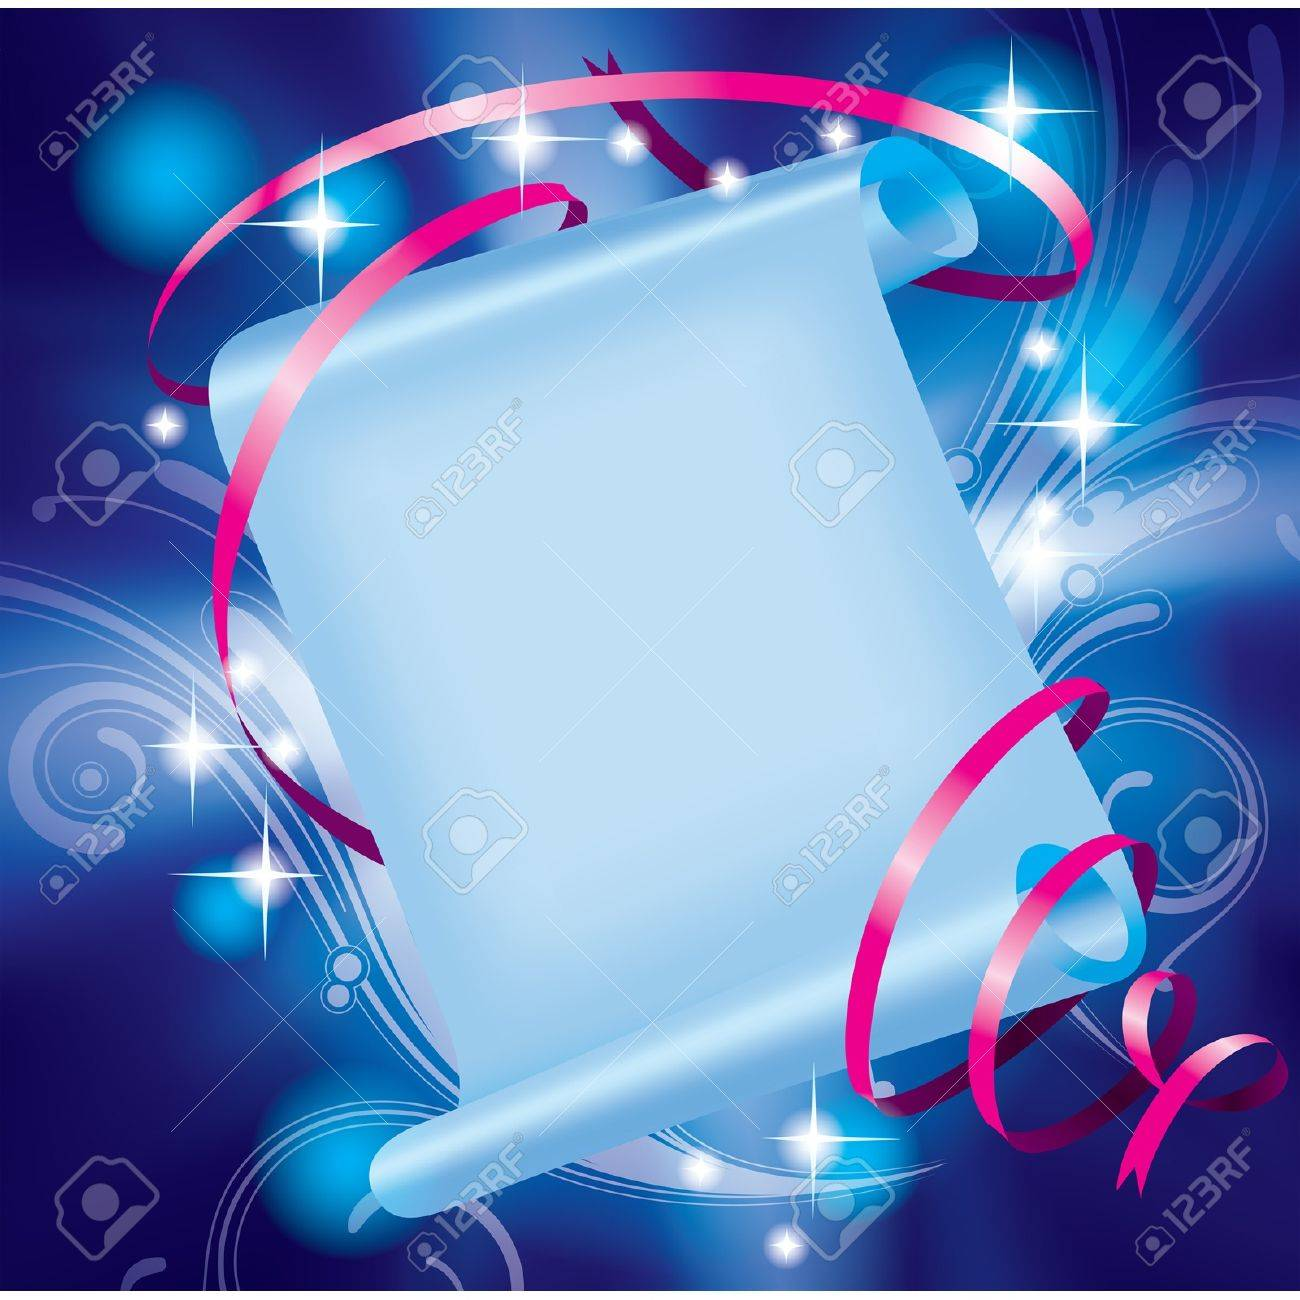 Vector image of fairy paper banner with pink ribbon on a luminous blue starry background with decorative elements Stock Vector - 16415636